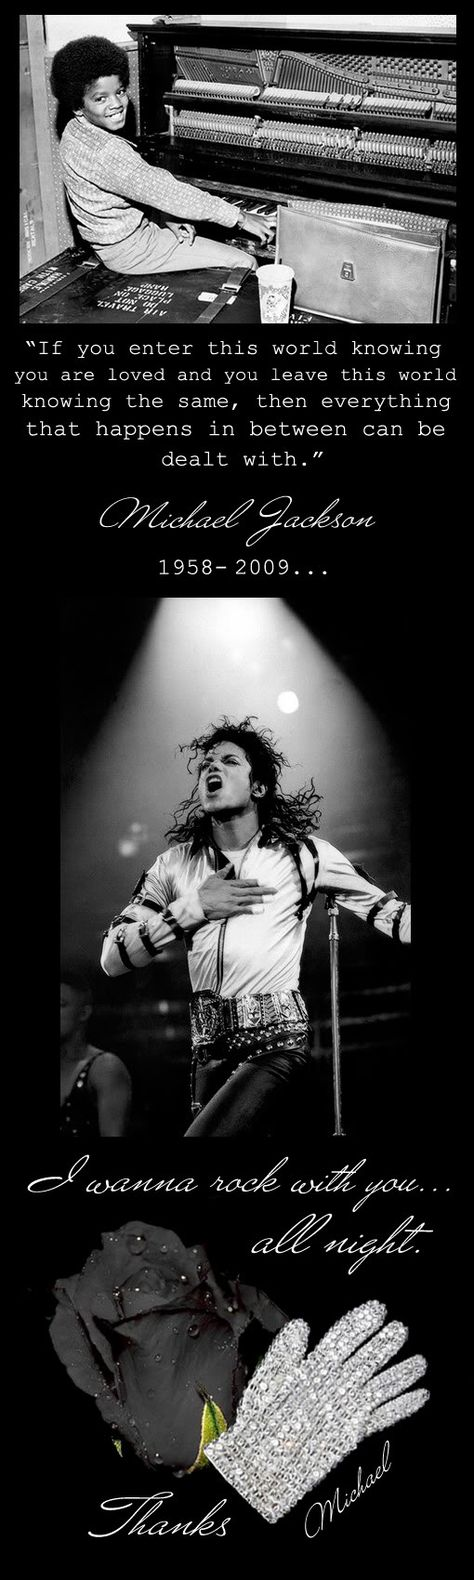 """""""If you enter this world knowing you are loved and you leave this world knowing the same, then everything that happens in between can be dealt with"""" - MJ"""